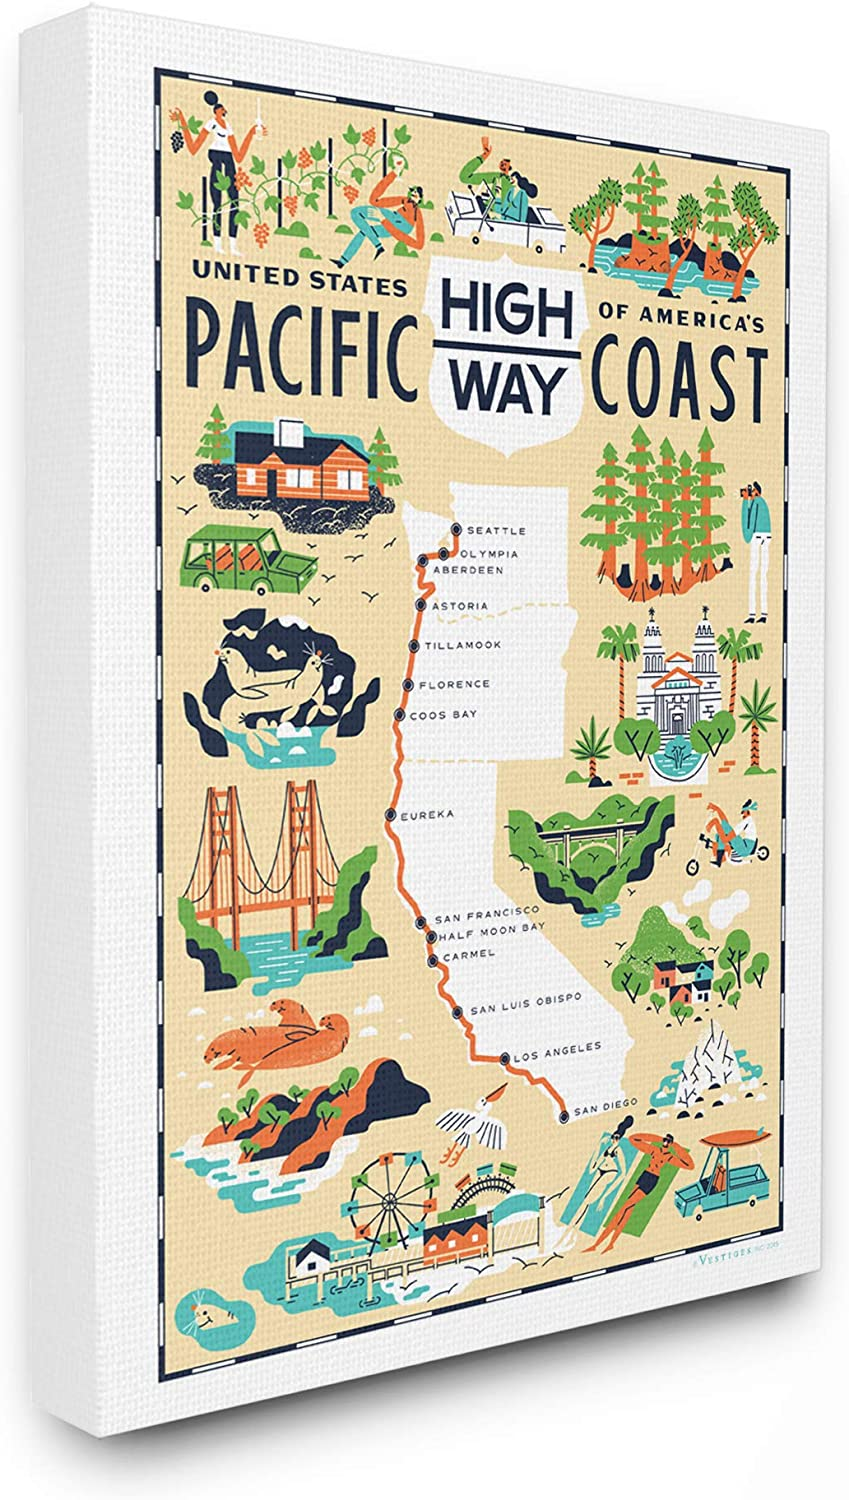 The Stupell Home Decor Us Pacific Coast Highway Pale Yellow Illustrated Scenic Map Poster Stretched Canvas Wall Art, 11x14, Multi-color